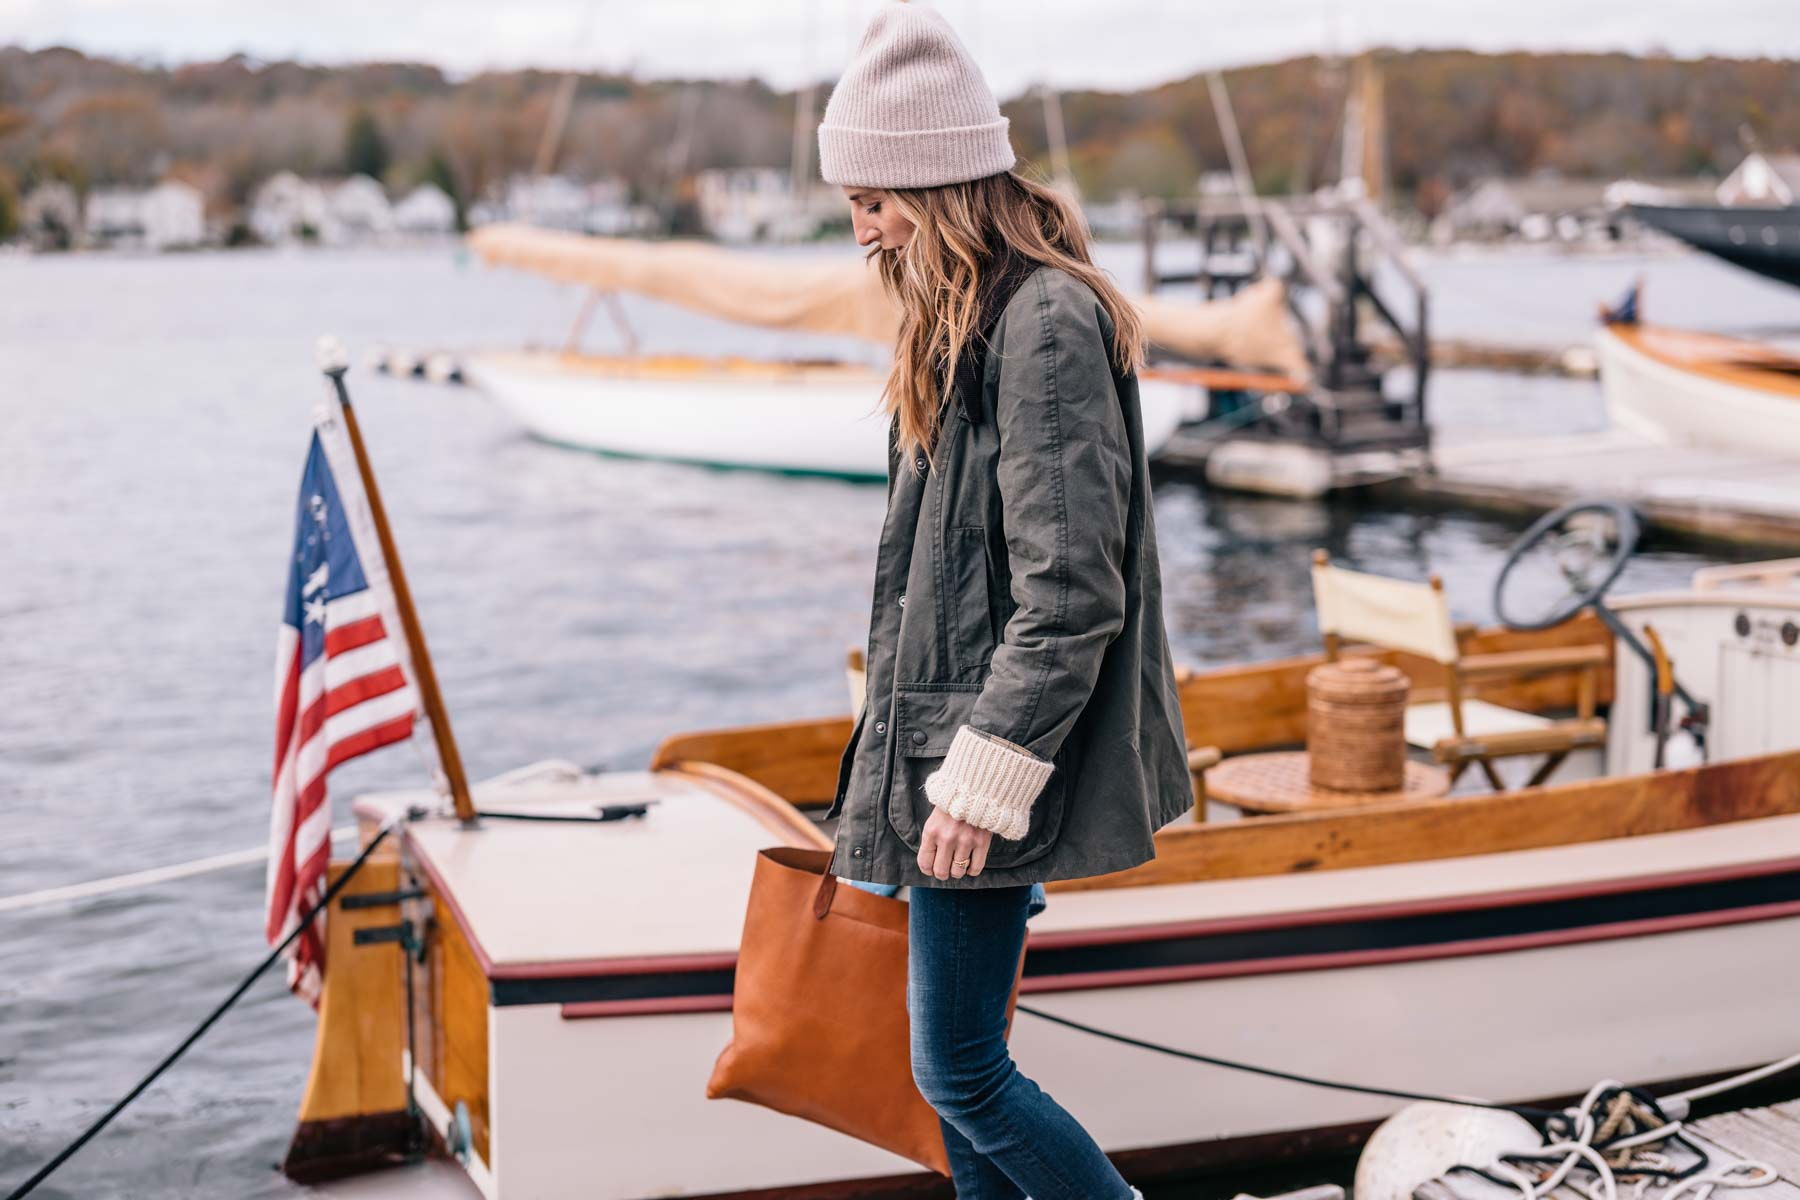 Jess Ann Kirby wears a Barbour jacket with a cashmere beanie for fall in New England